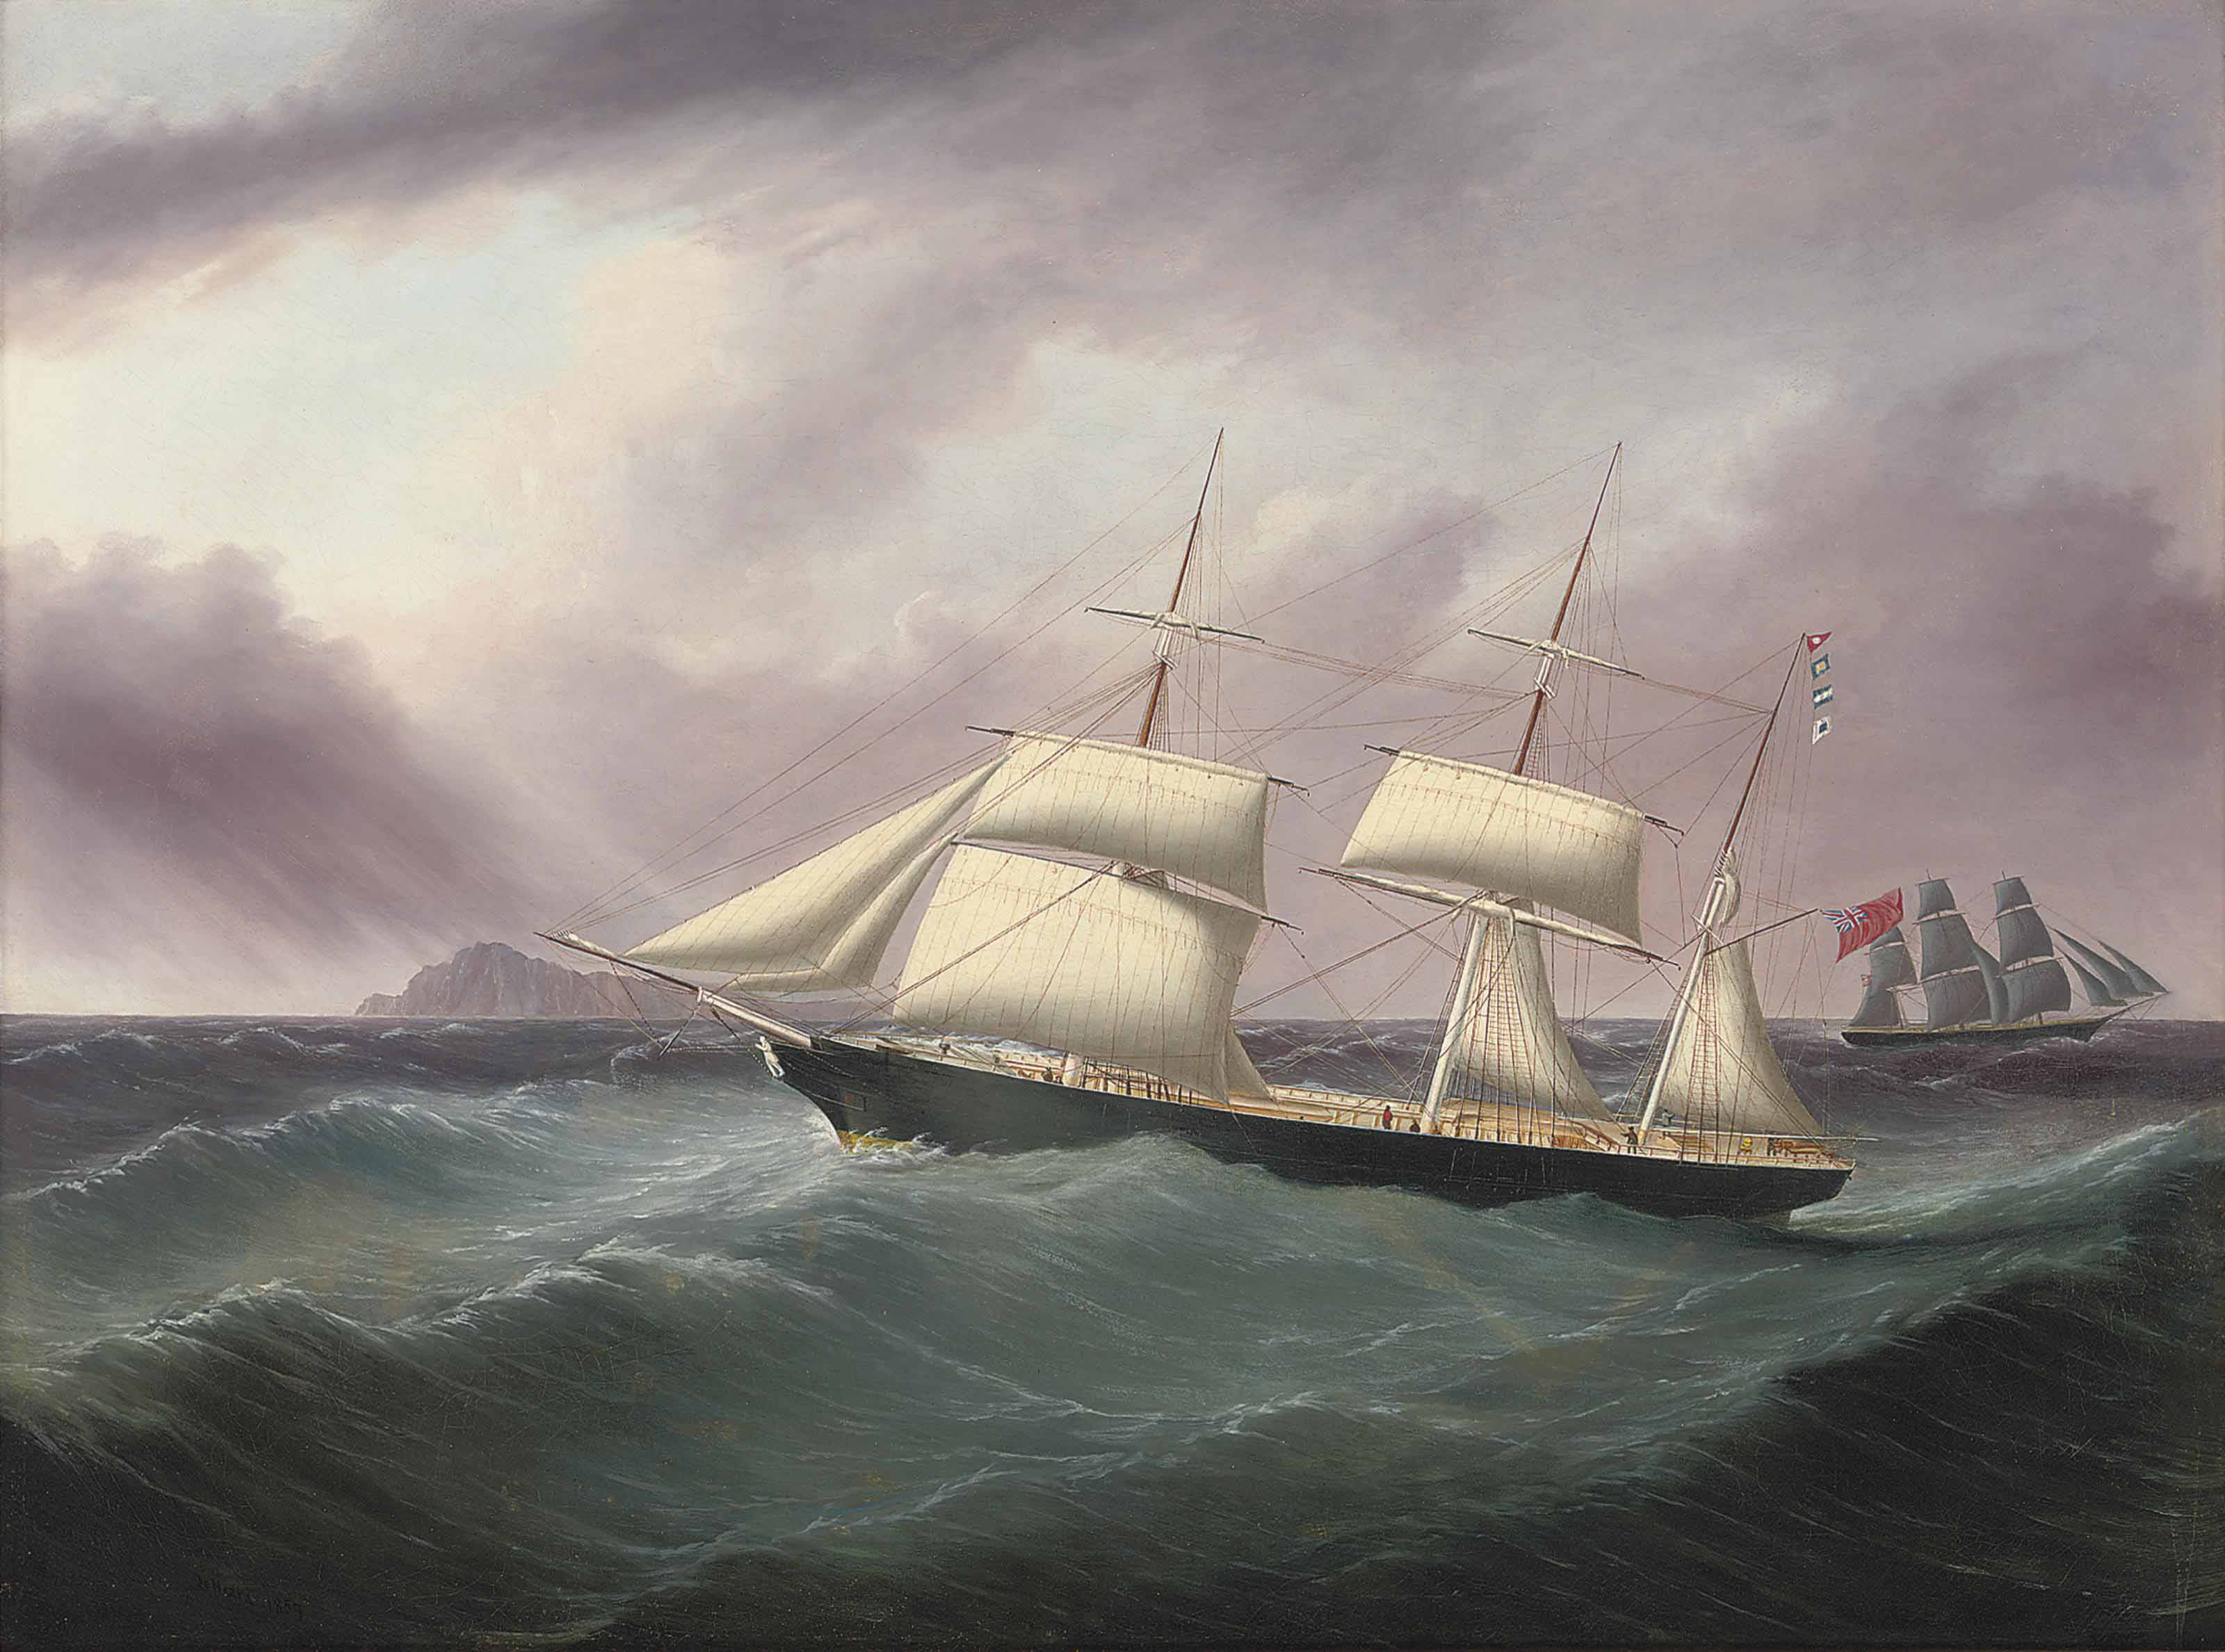 The barque Humphrey Nelson flying her recognition flags as she passes a three-masted merchantman off a mid-ocean island